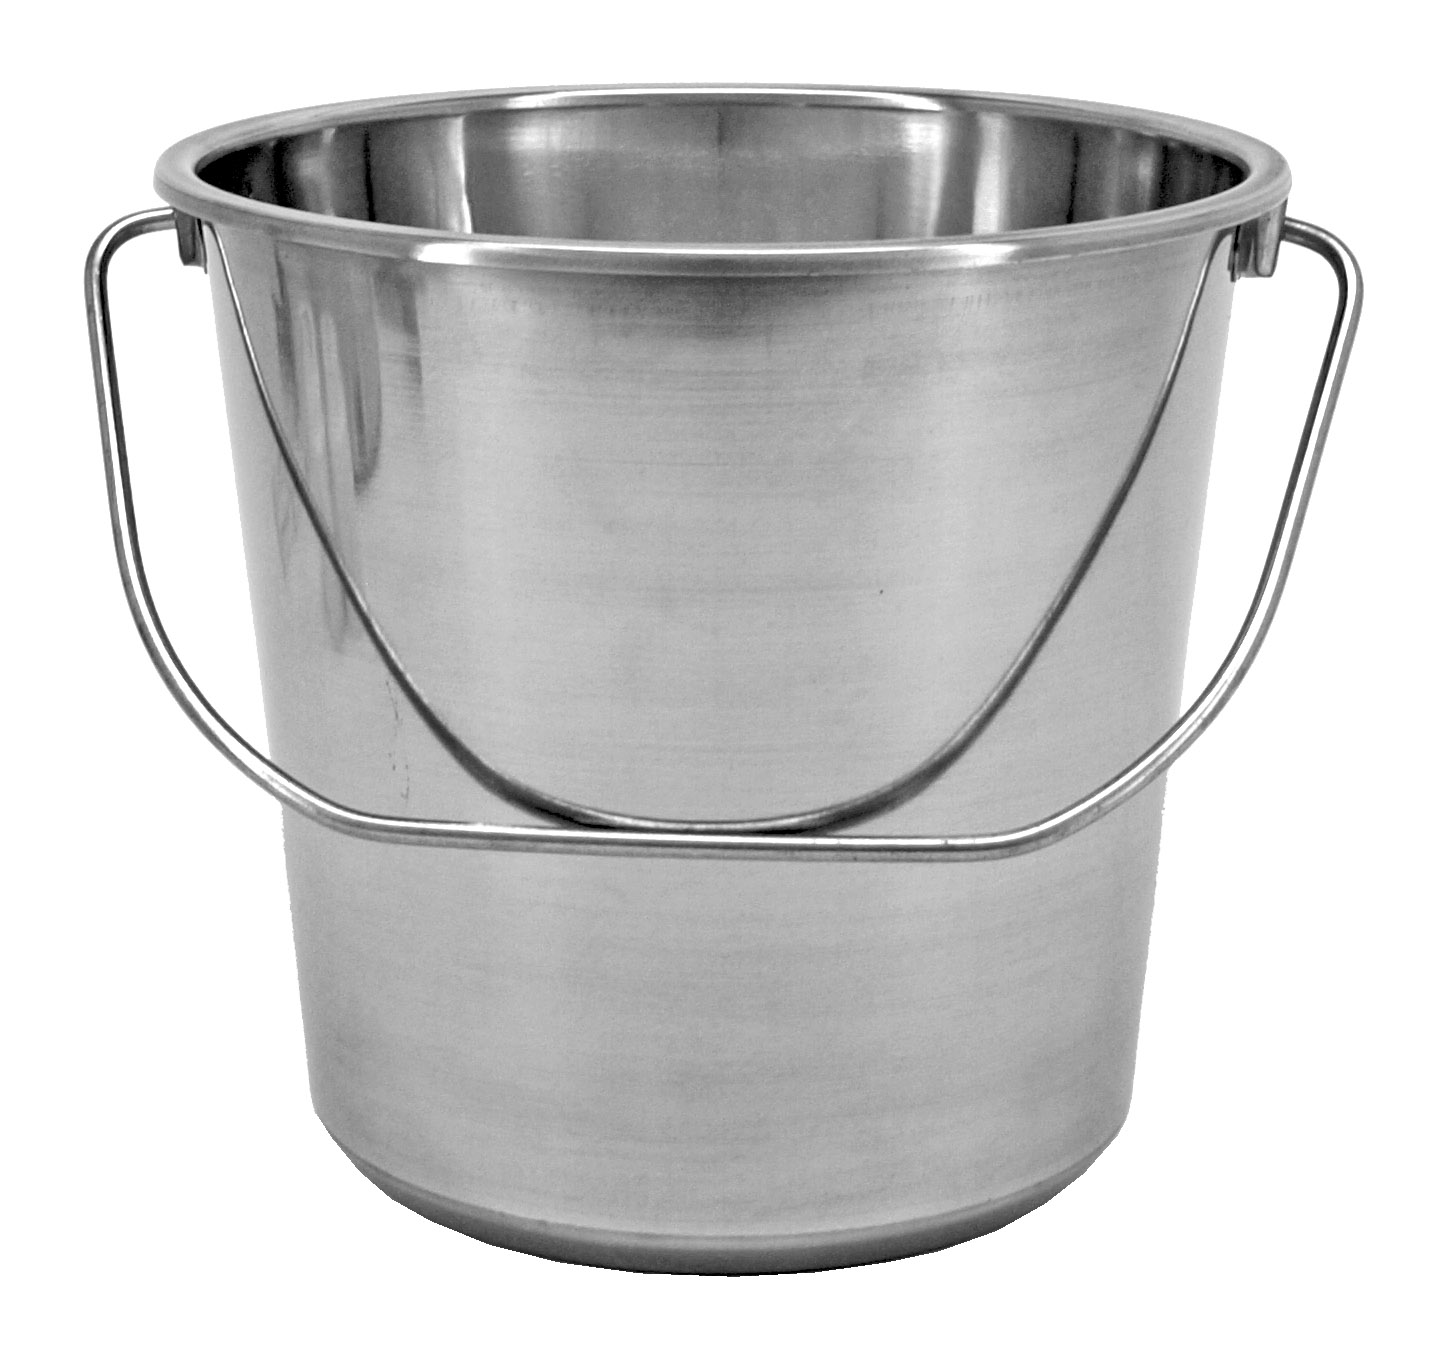 2 37 Gallon Stainless Steel Bucket Click To Enlarge